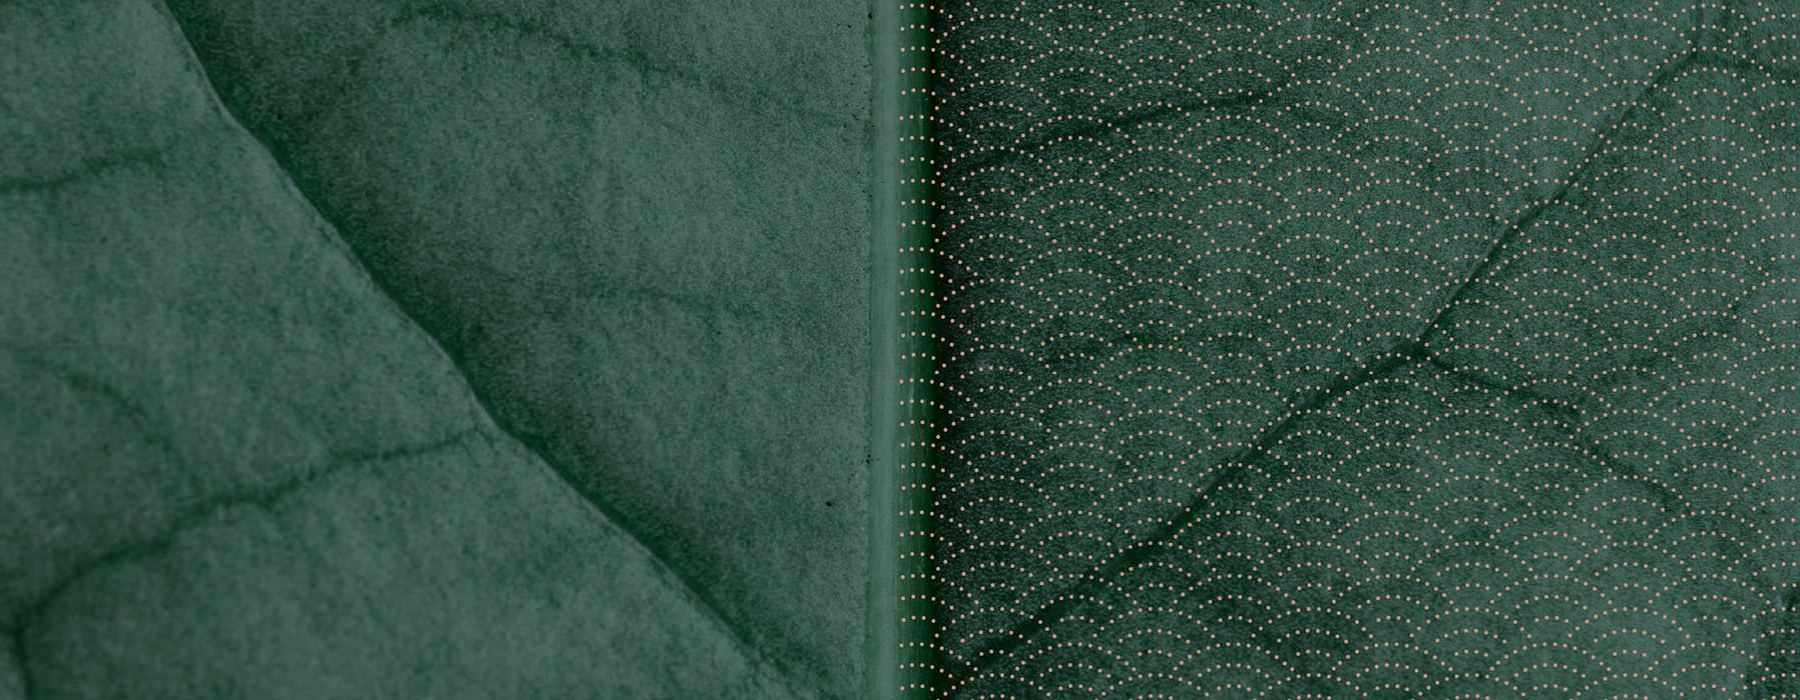 closeup image of green leaf with pattern overlay